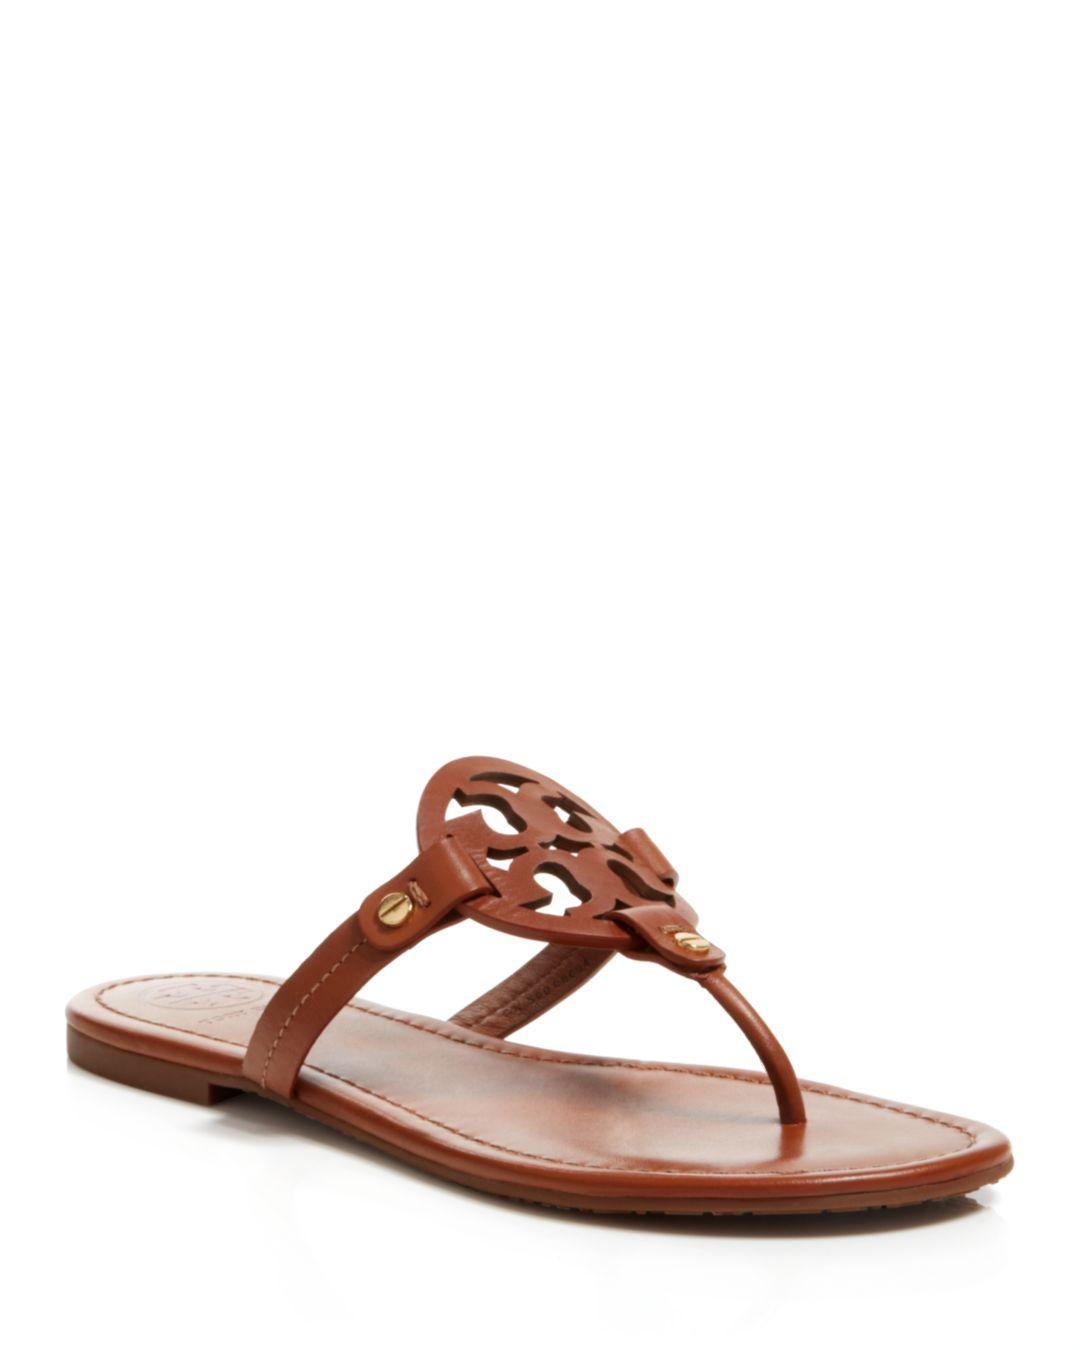 2bc80626c3f361 Lyst - Tory Burch Flat Thong Sandals - Miller in Brown - Save 19%